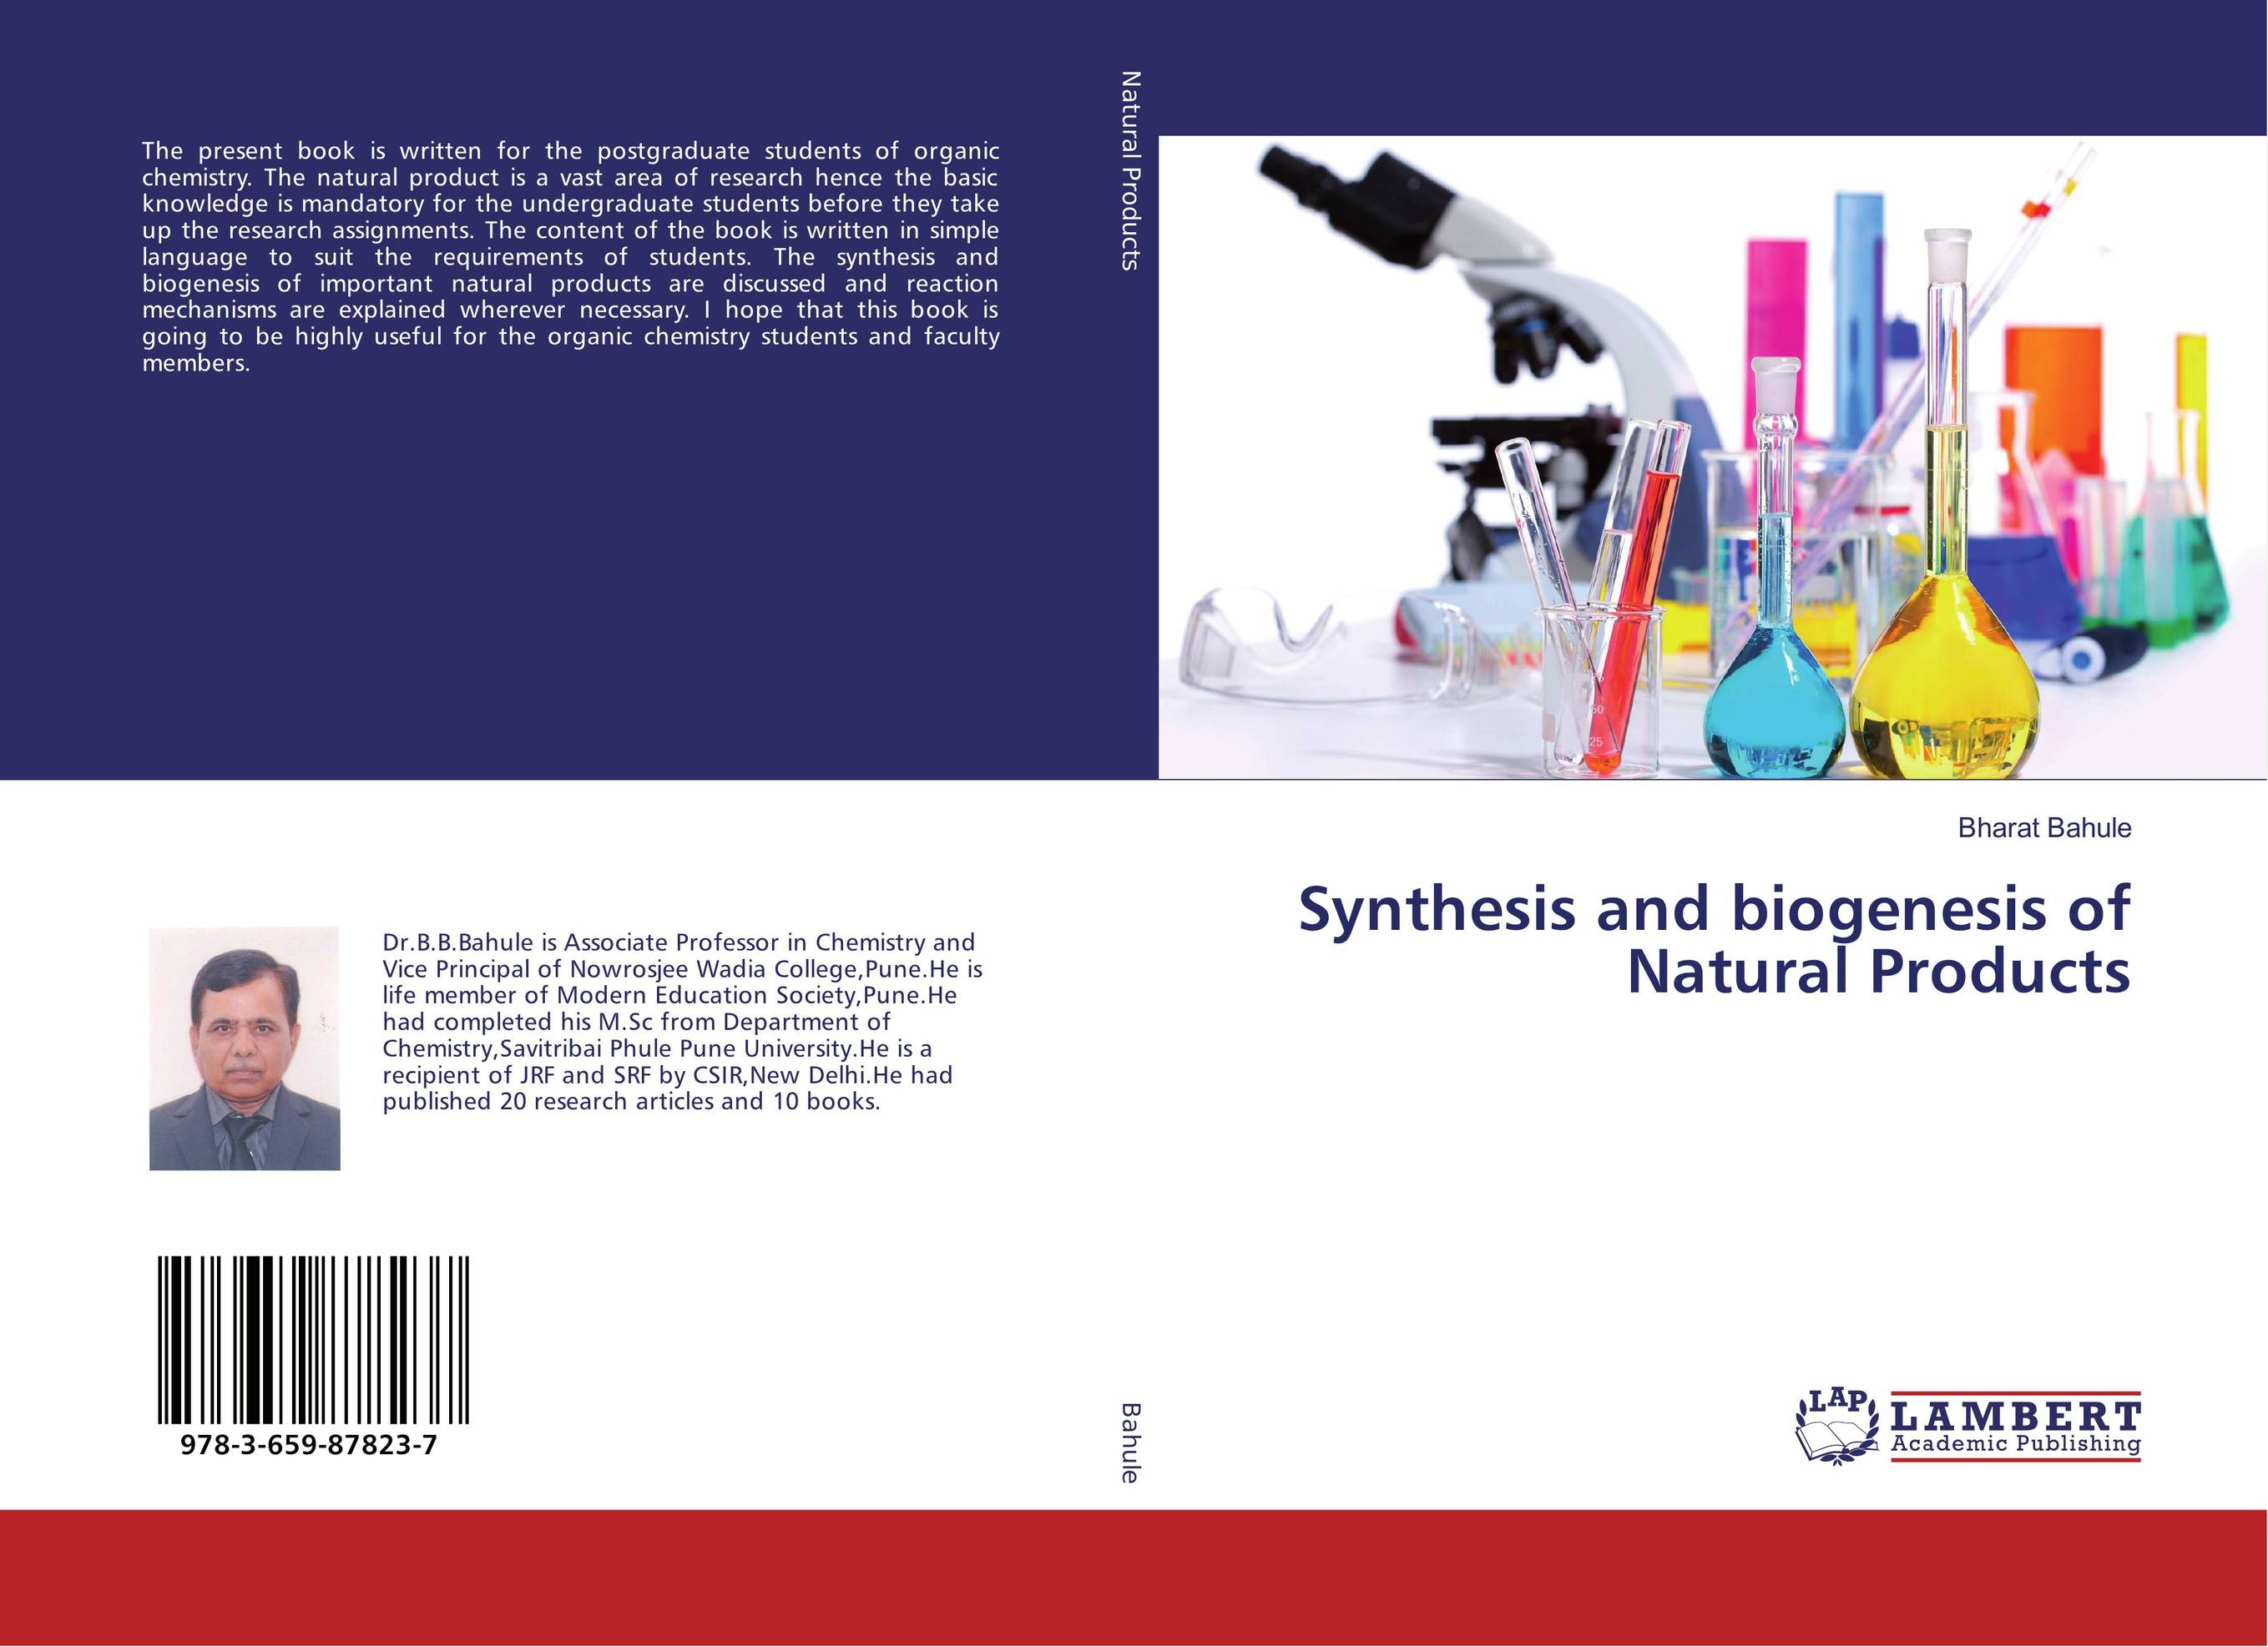 Synthesis and biogenesis of Natural Products